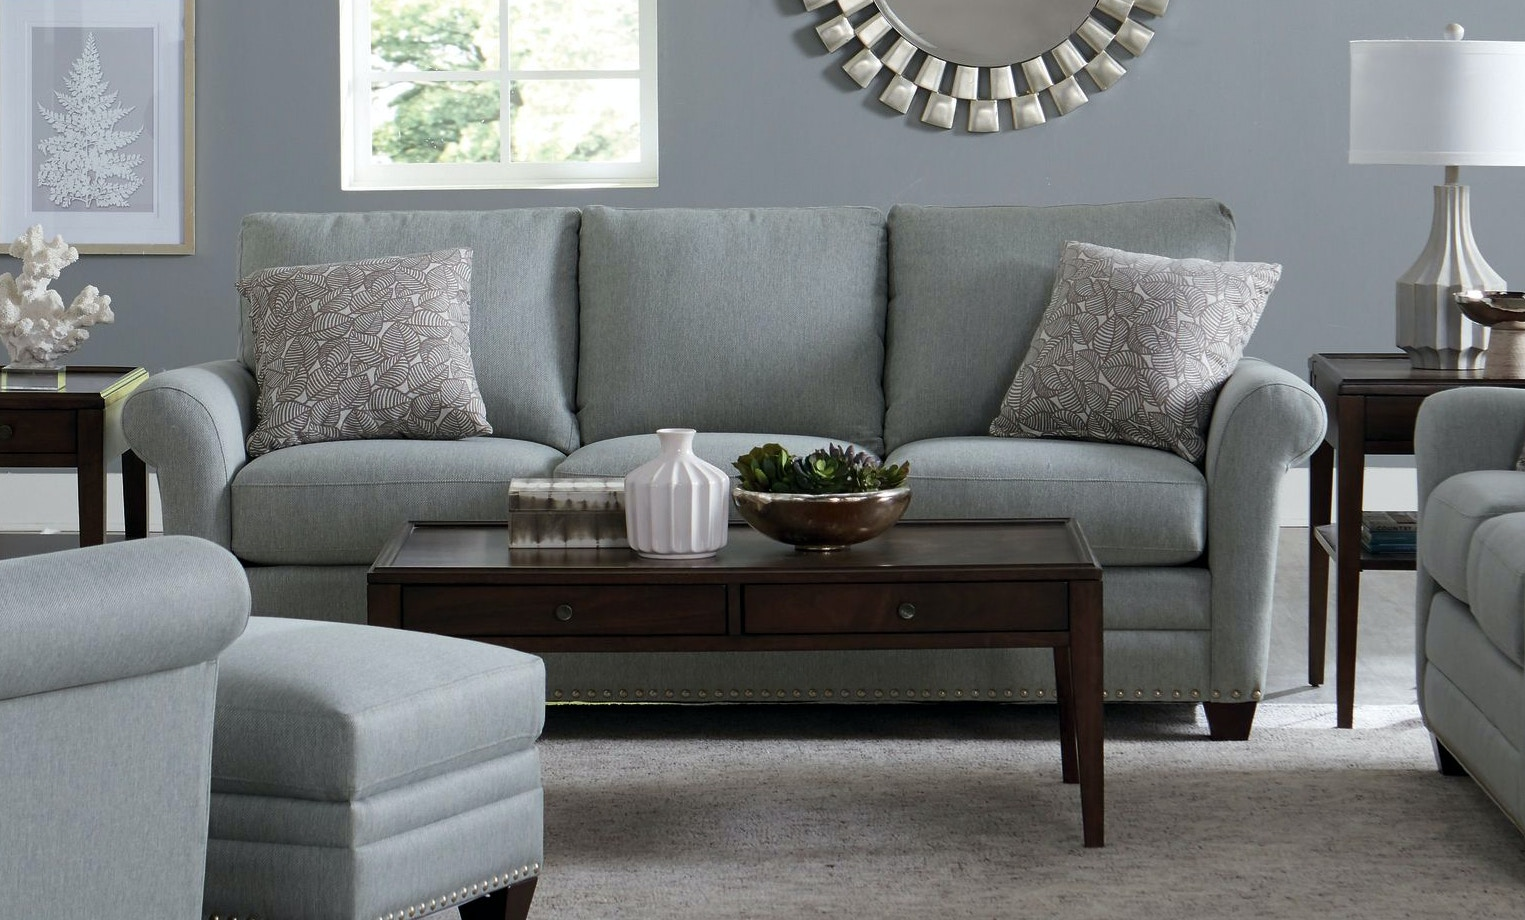 Attractive Bassett Sofa With Pillows 742638